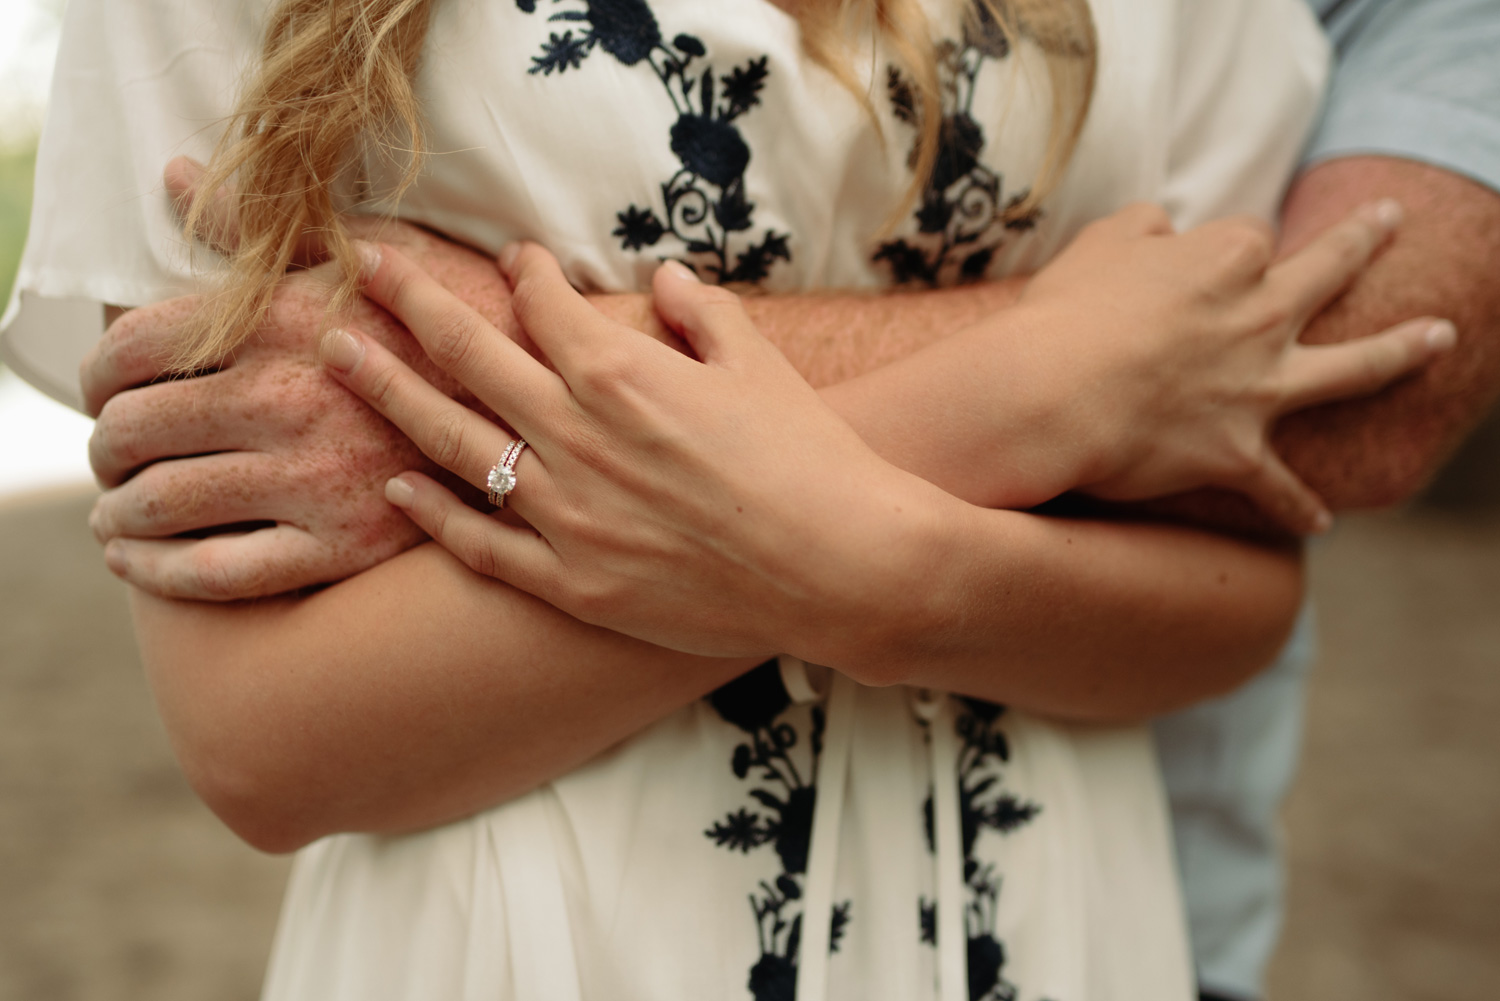 engaged couple embracing arms with engagement ring close up